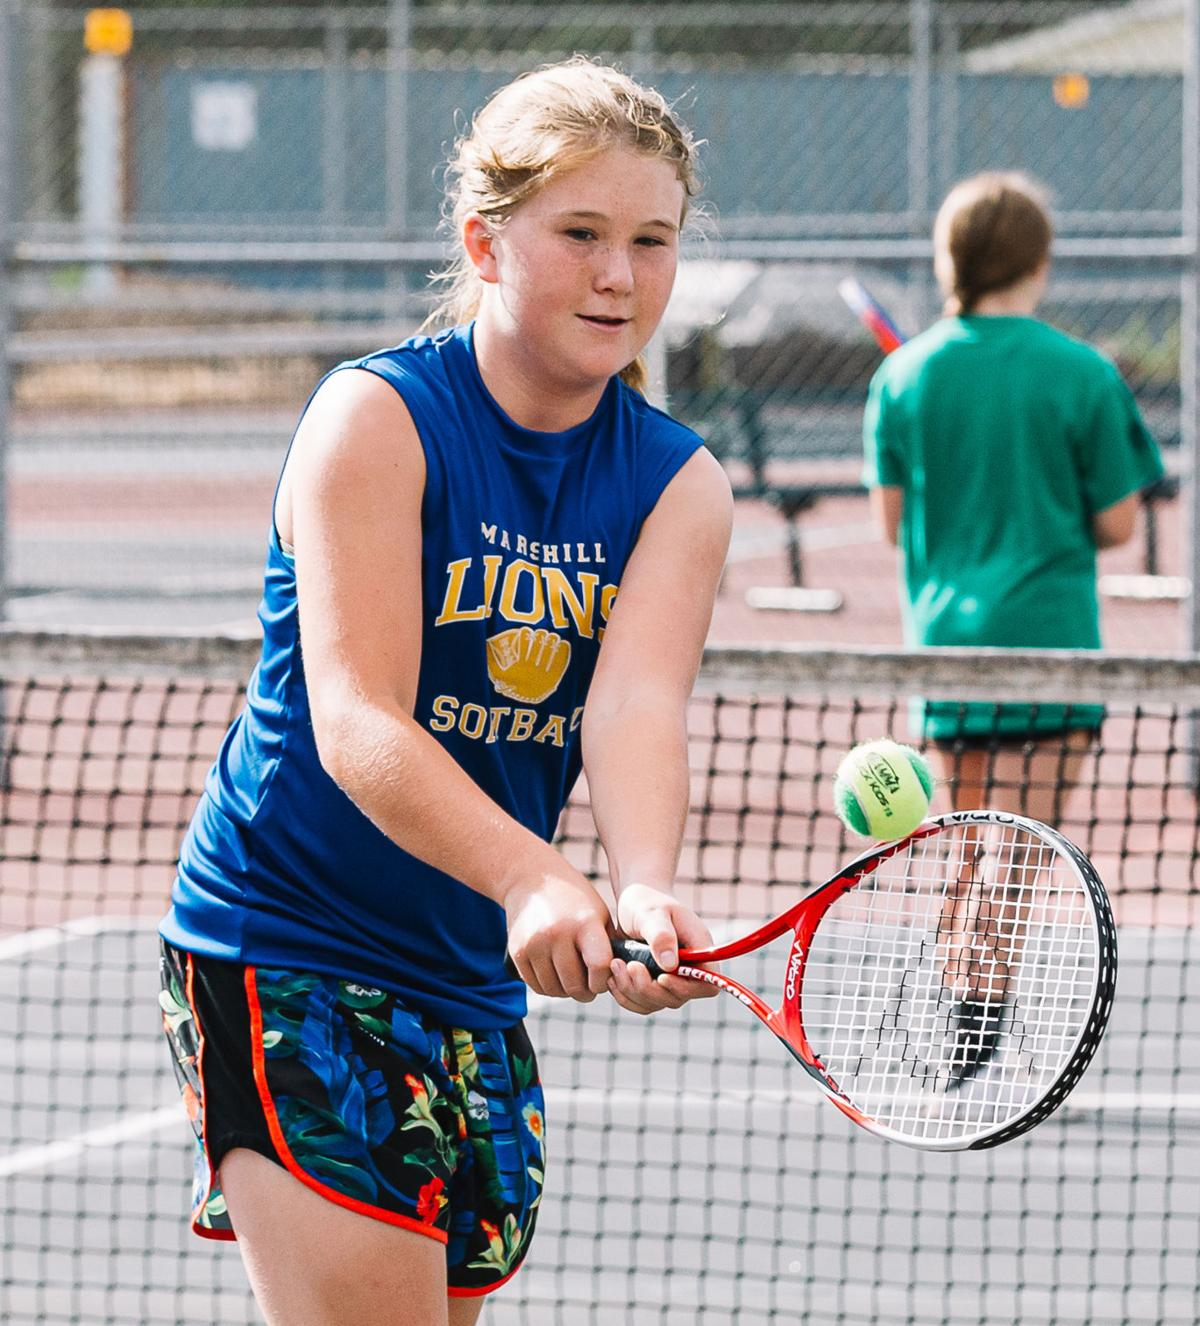 25 sports-youth sports photo page2.jpg